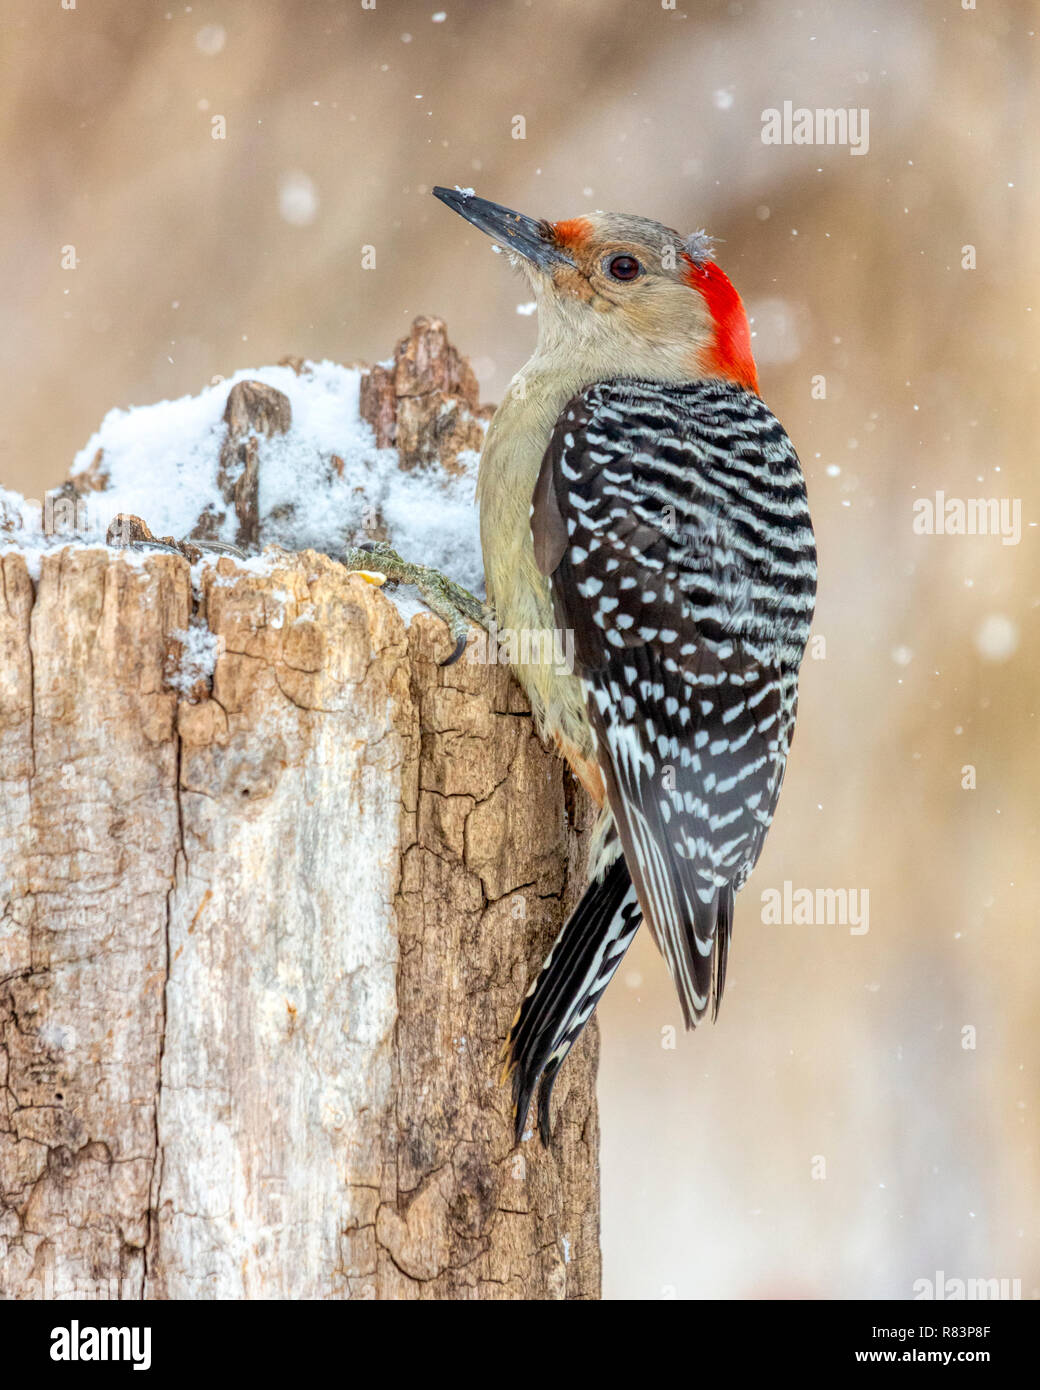 Wild female Red-bellied Woodpecker (Melanerpes carolinus) perched on a stump in winter with snow falling around her. Stock Photo